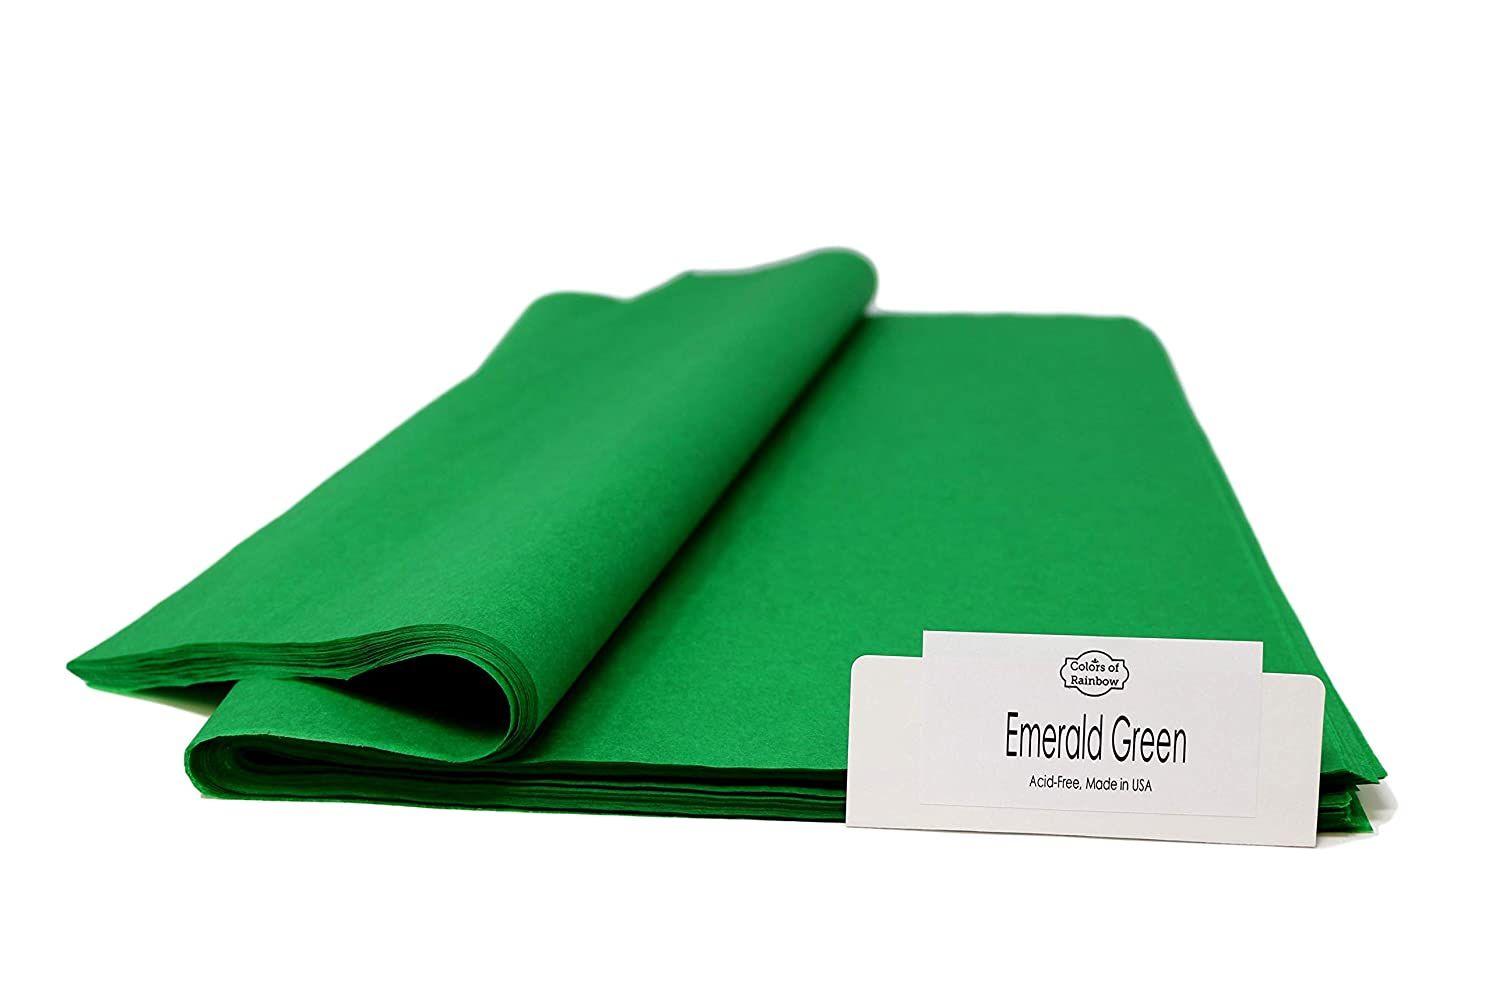 """Emerald Green - 96 Sheets - Gift Wrapping Tissue Paper 15"""" x 20"""" - Made in United States by Colors of Rainbow?"""